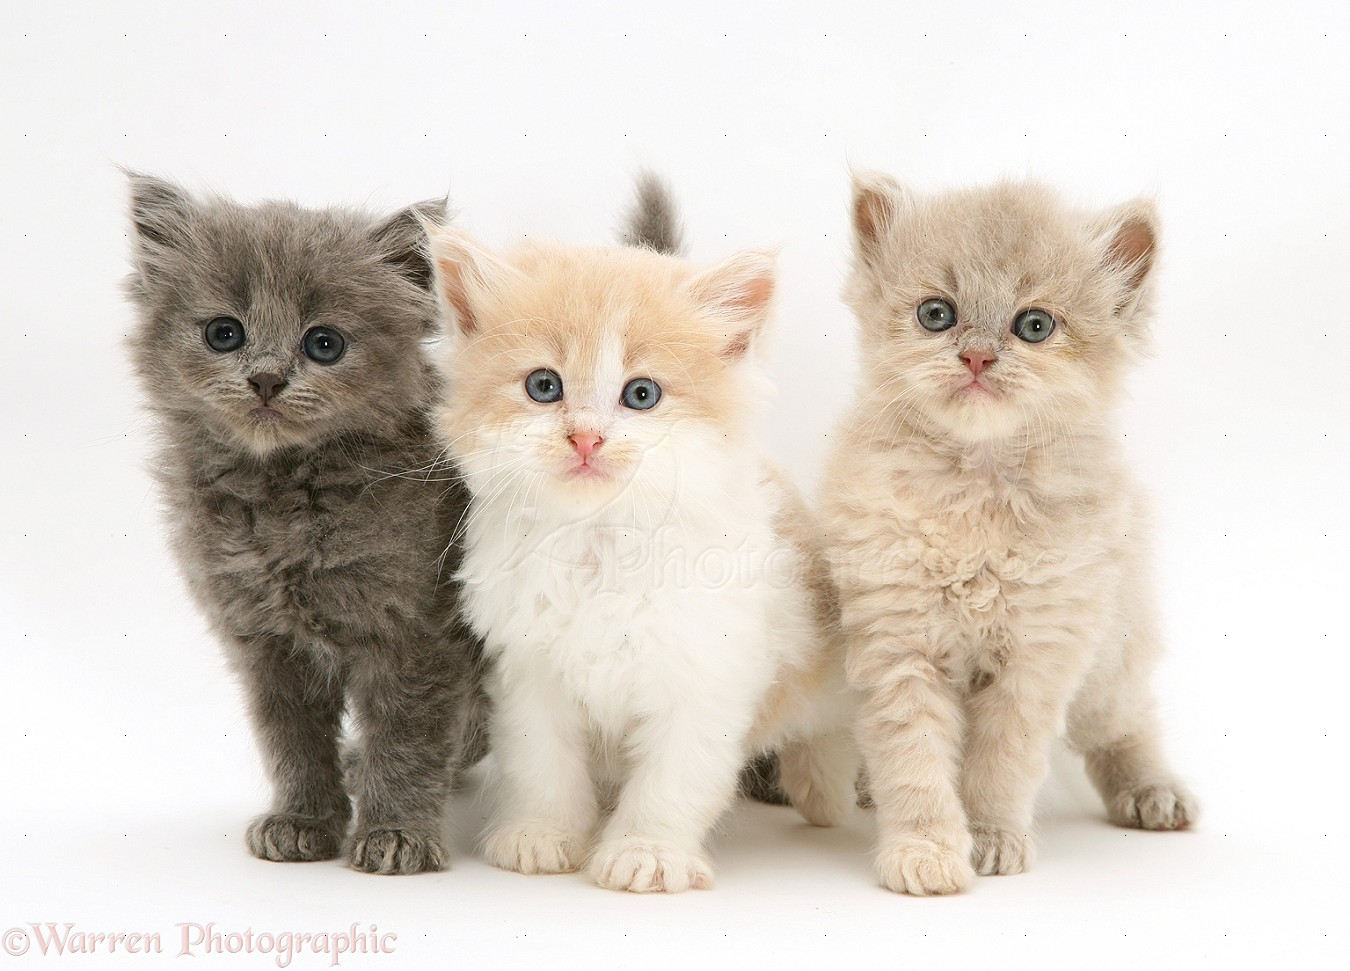 Three cute kittens photo wp31117 The three cats